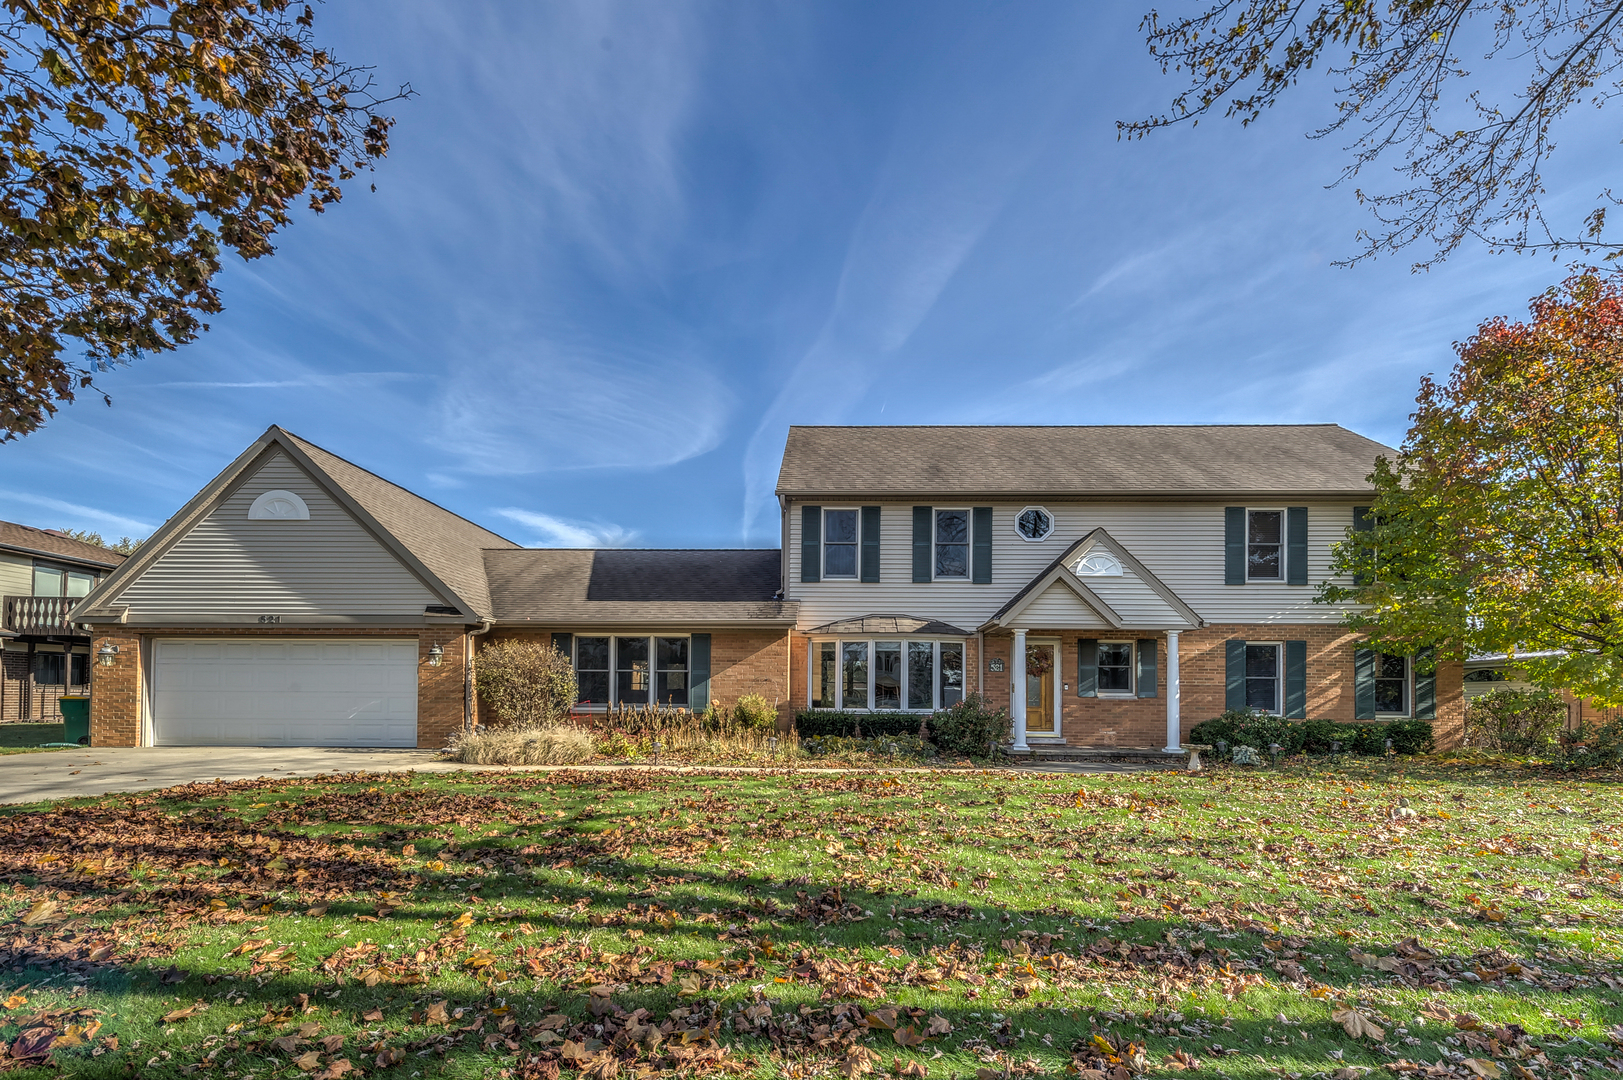 521 Crest Avenue, Elk Grove Village, Illinois